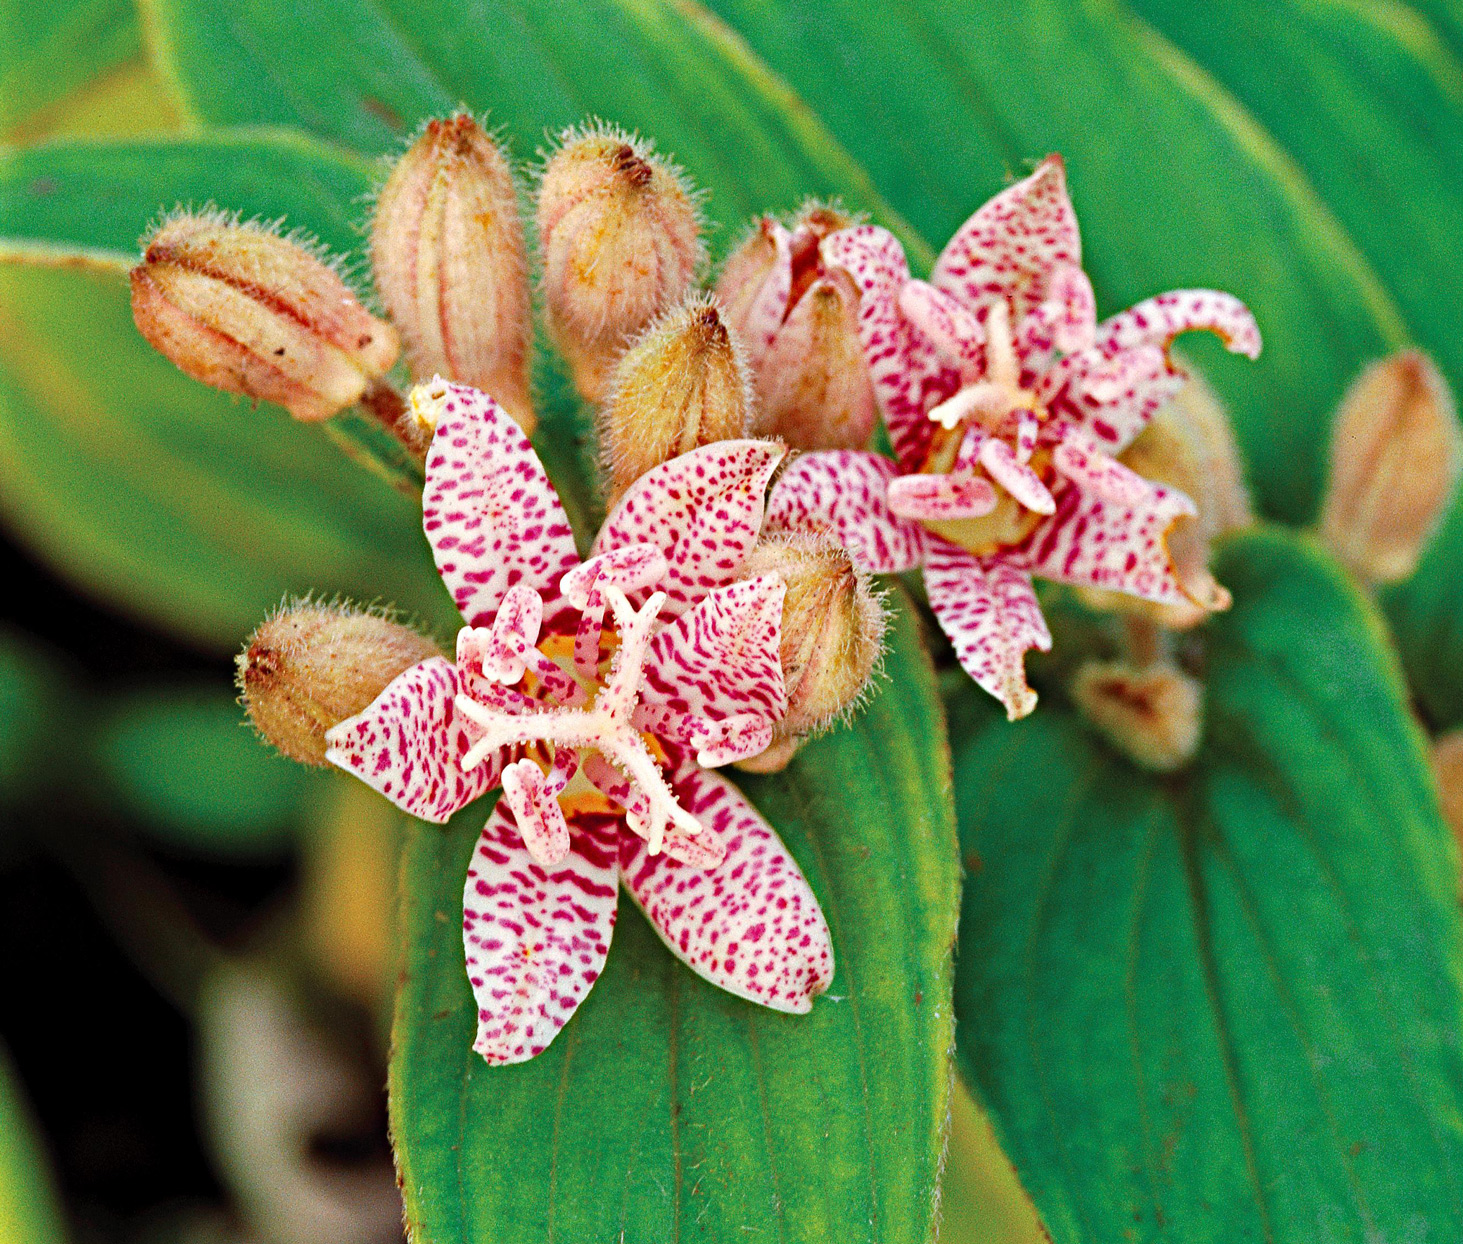 Common toad lily